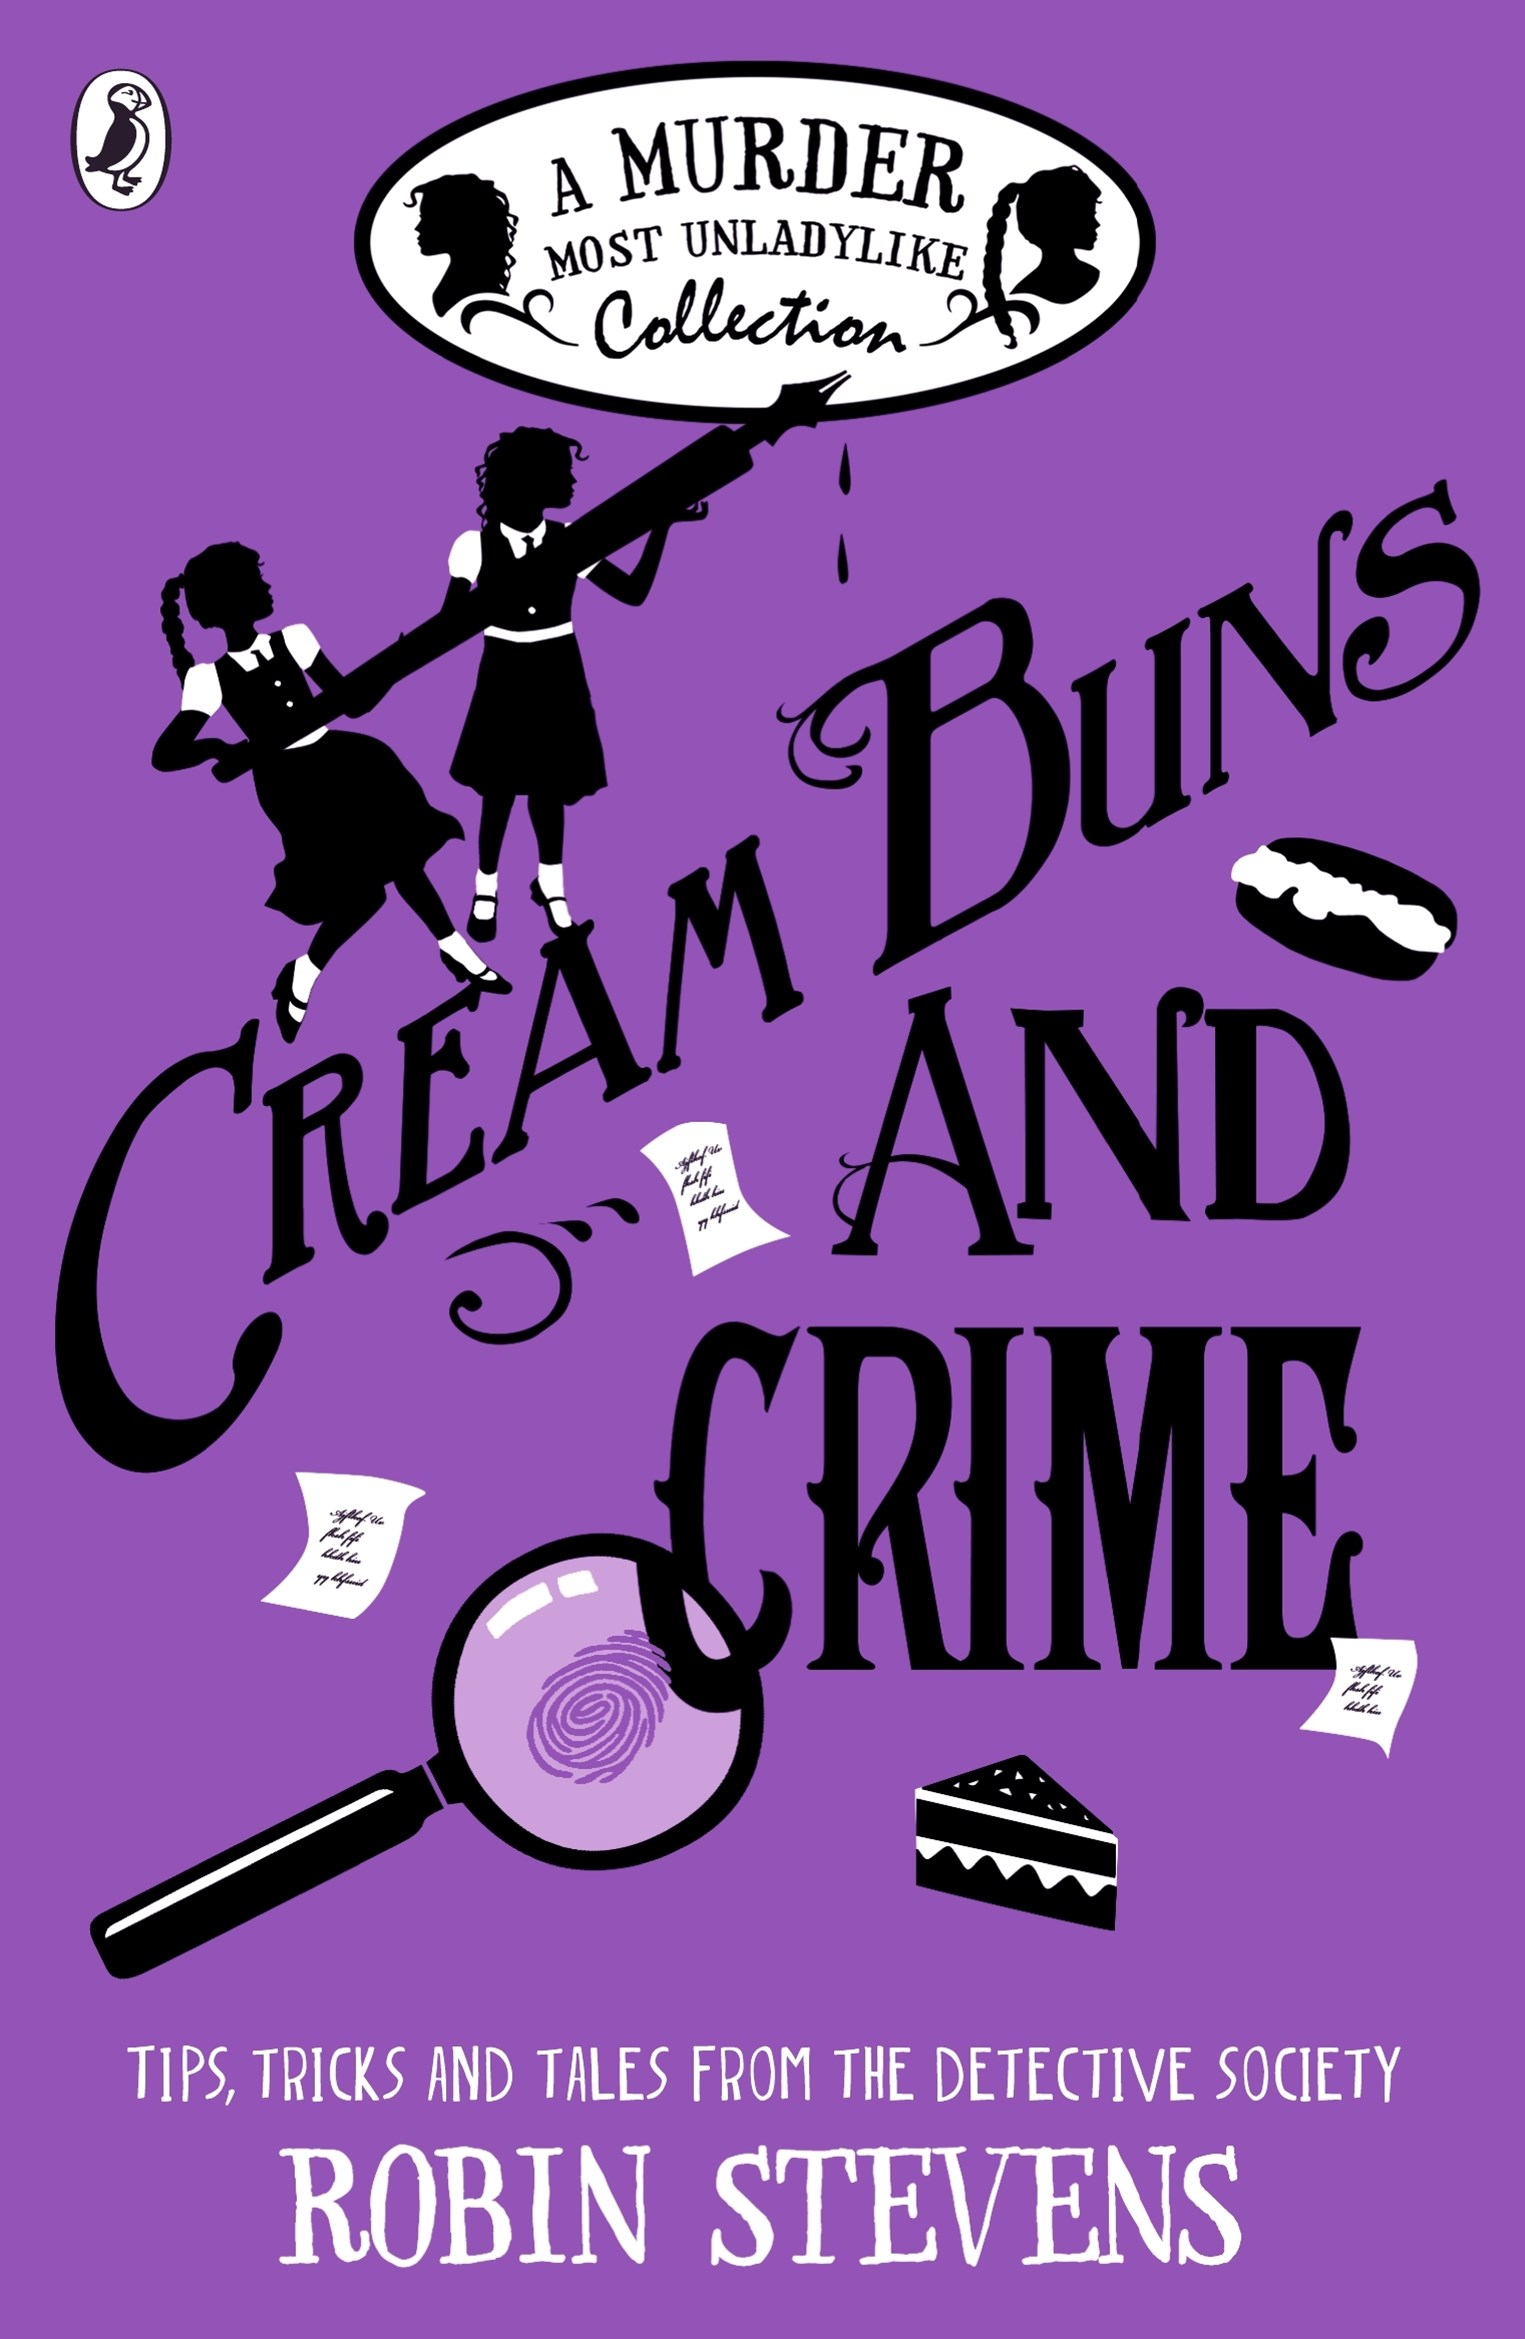 Cream Buns And Crime: A Murder Most Unladylike Collection